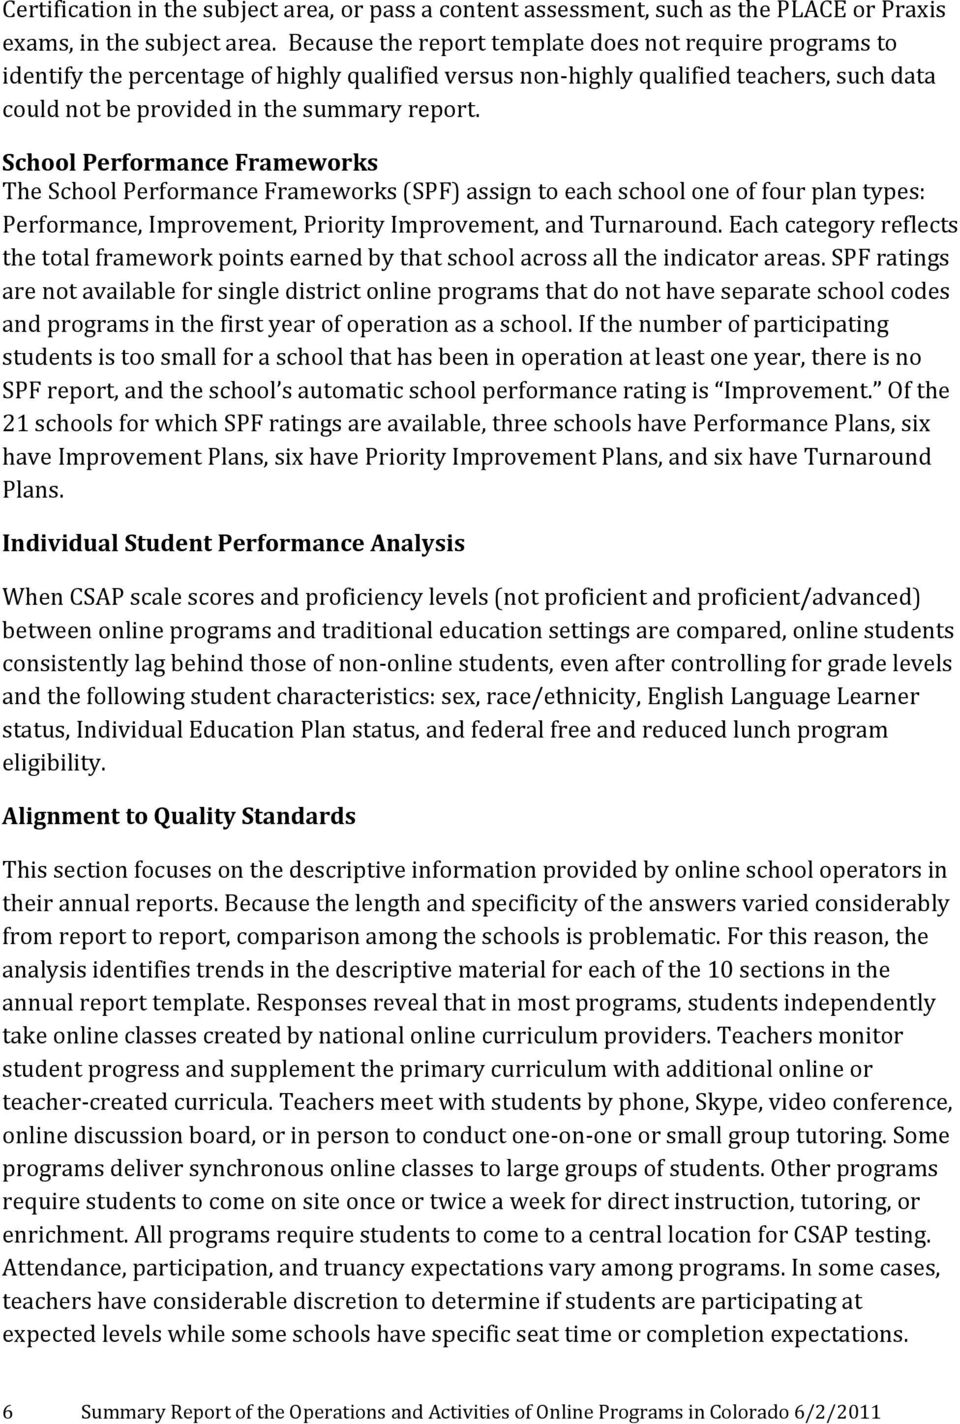 School Performance Frameworks The School Performance Frameworks (SPF) assign to each school one of four plan types: Performance, Improvement, Priority Improvement, and Turnaround.